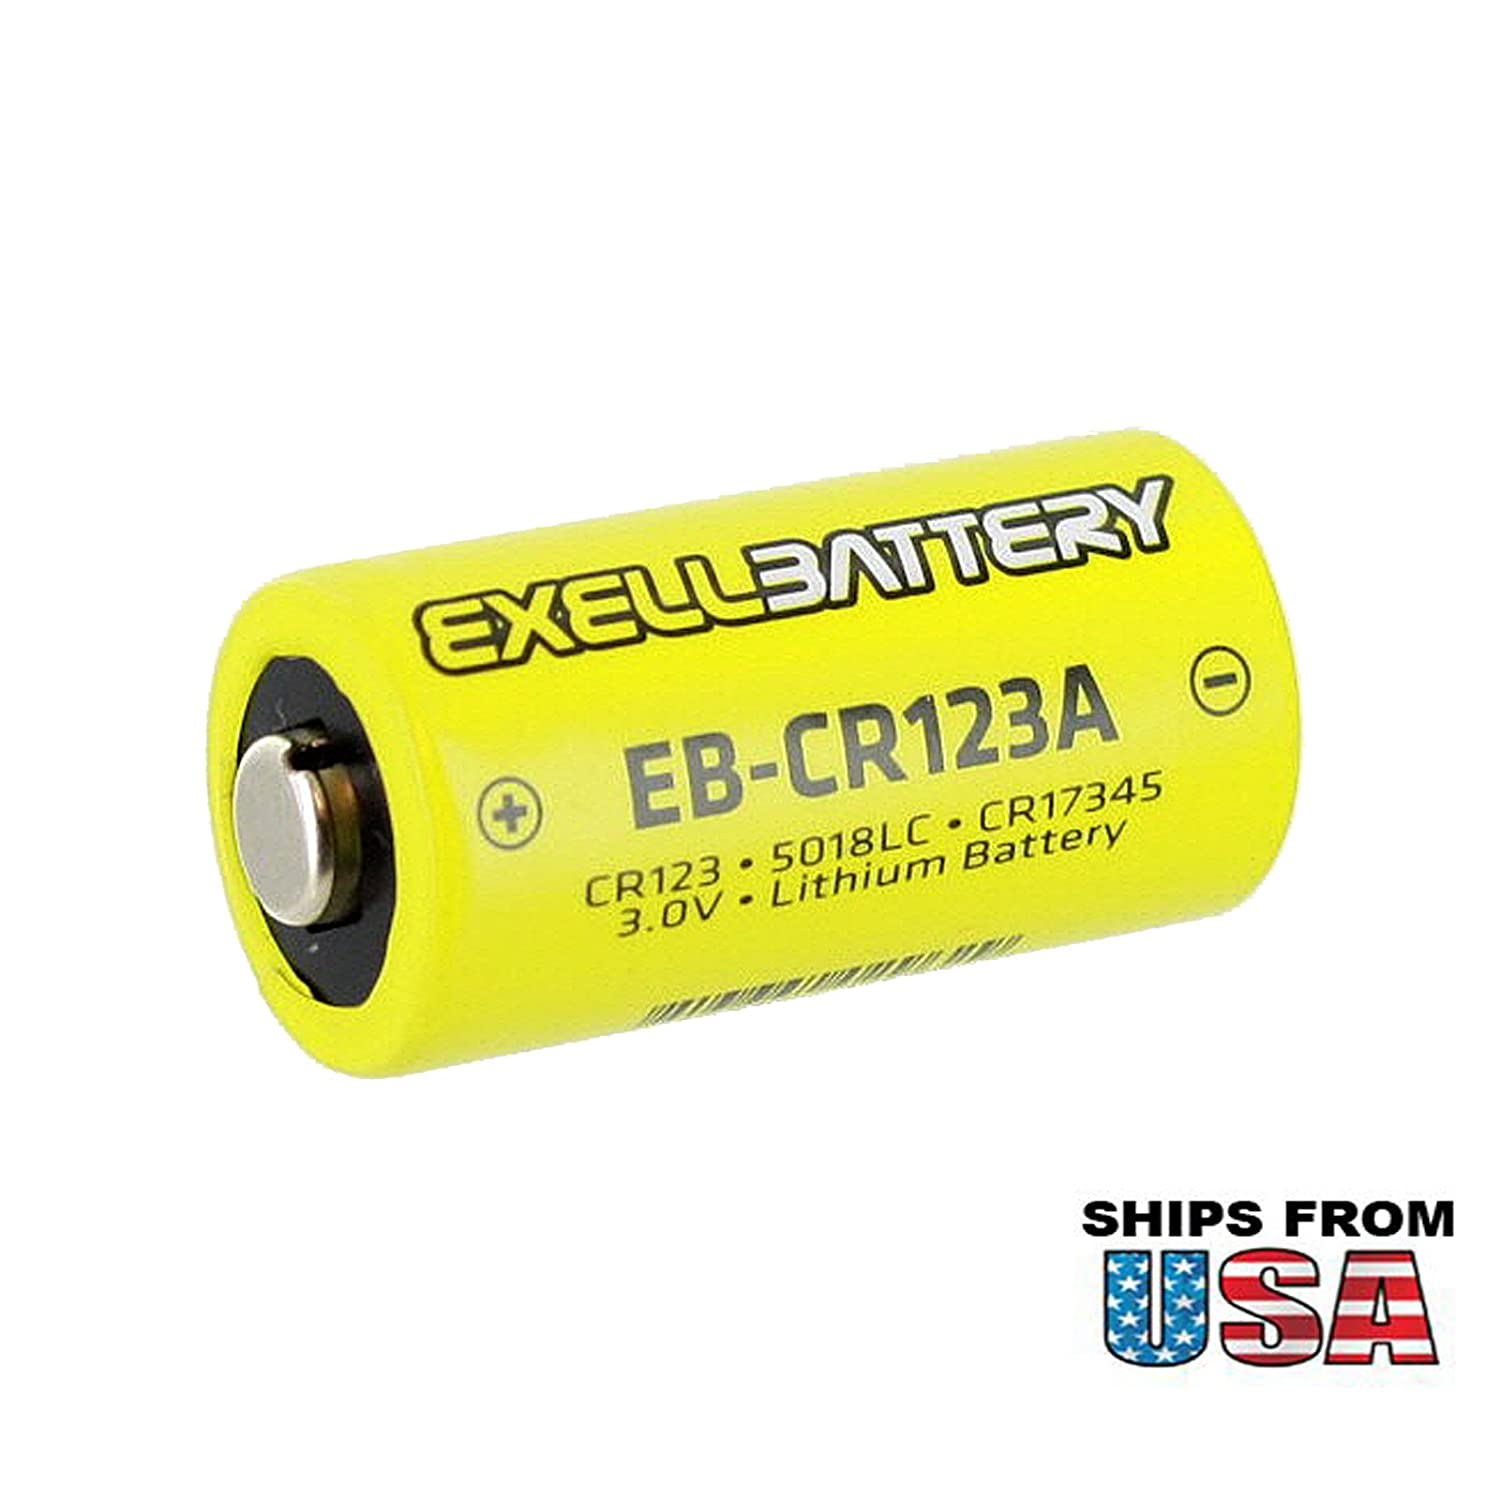 Exell EB-CR123A Photo Lithium Battery Replacement